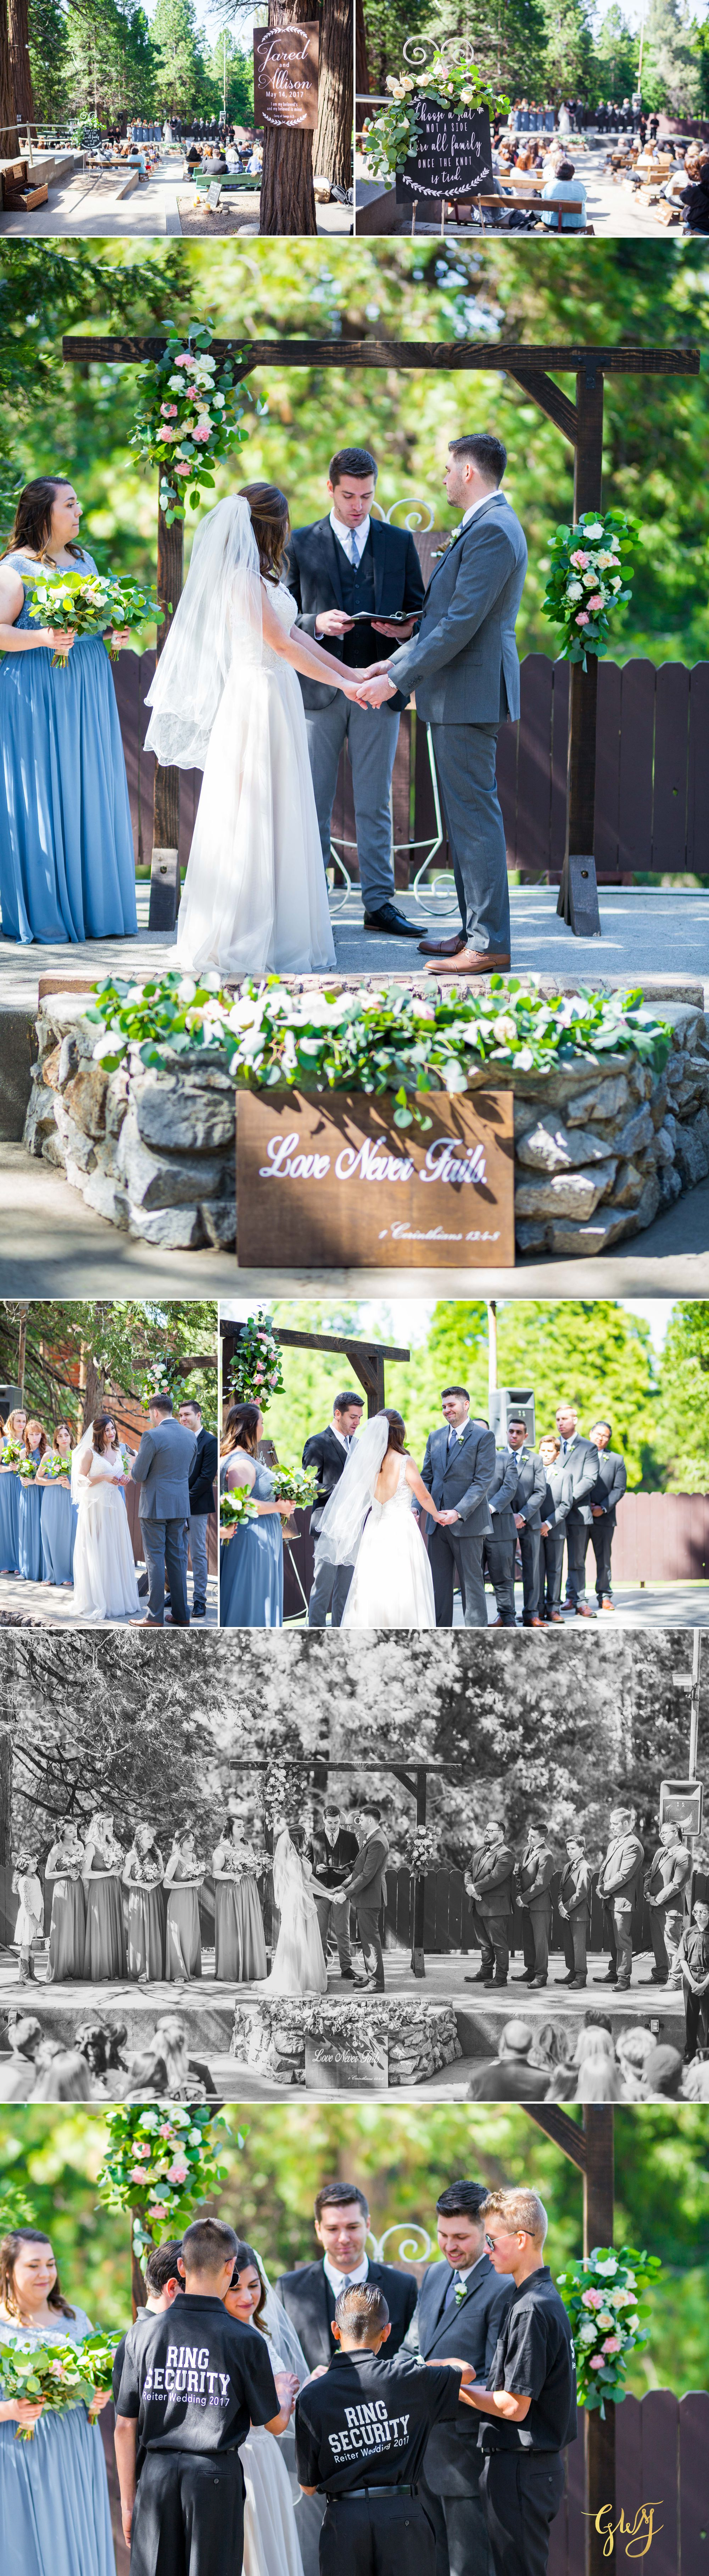 Allison + Jared Southern California Mountain Thousand Pines Christian Camp Wedding by Glass Woods Media 21.jpg